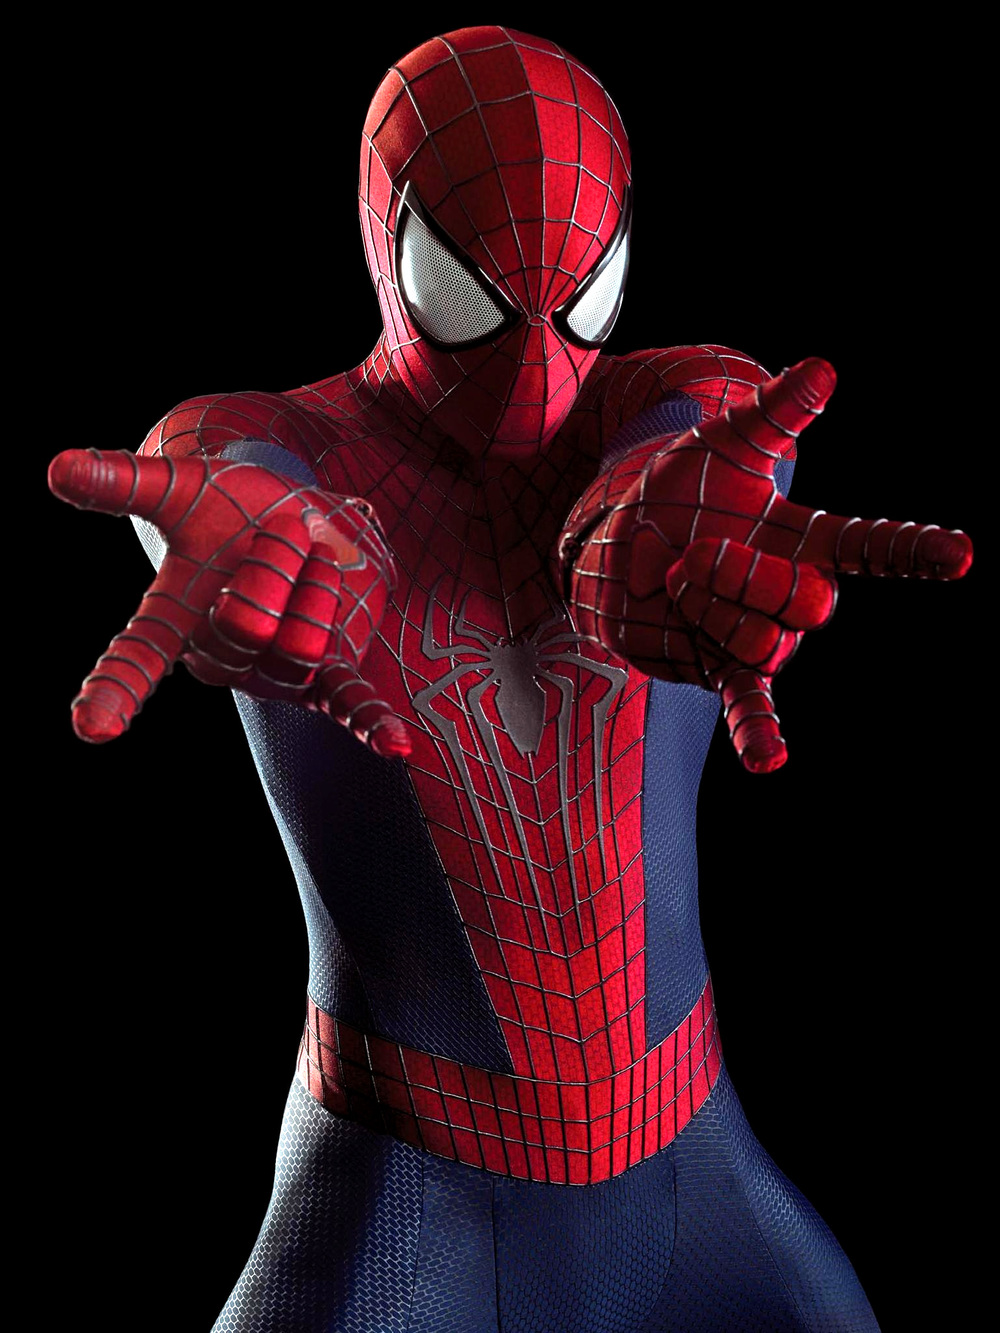 the-amazing-spider-man-2-new-details-on- & THE AMAZING SPIDER-MAN 2 - New Details on Spideyu0027s Suit u2014 GeekTyrant